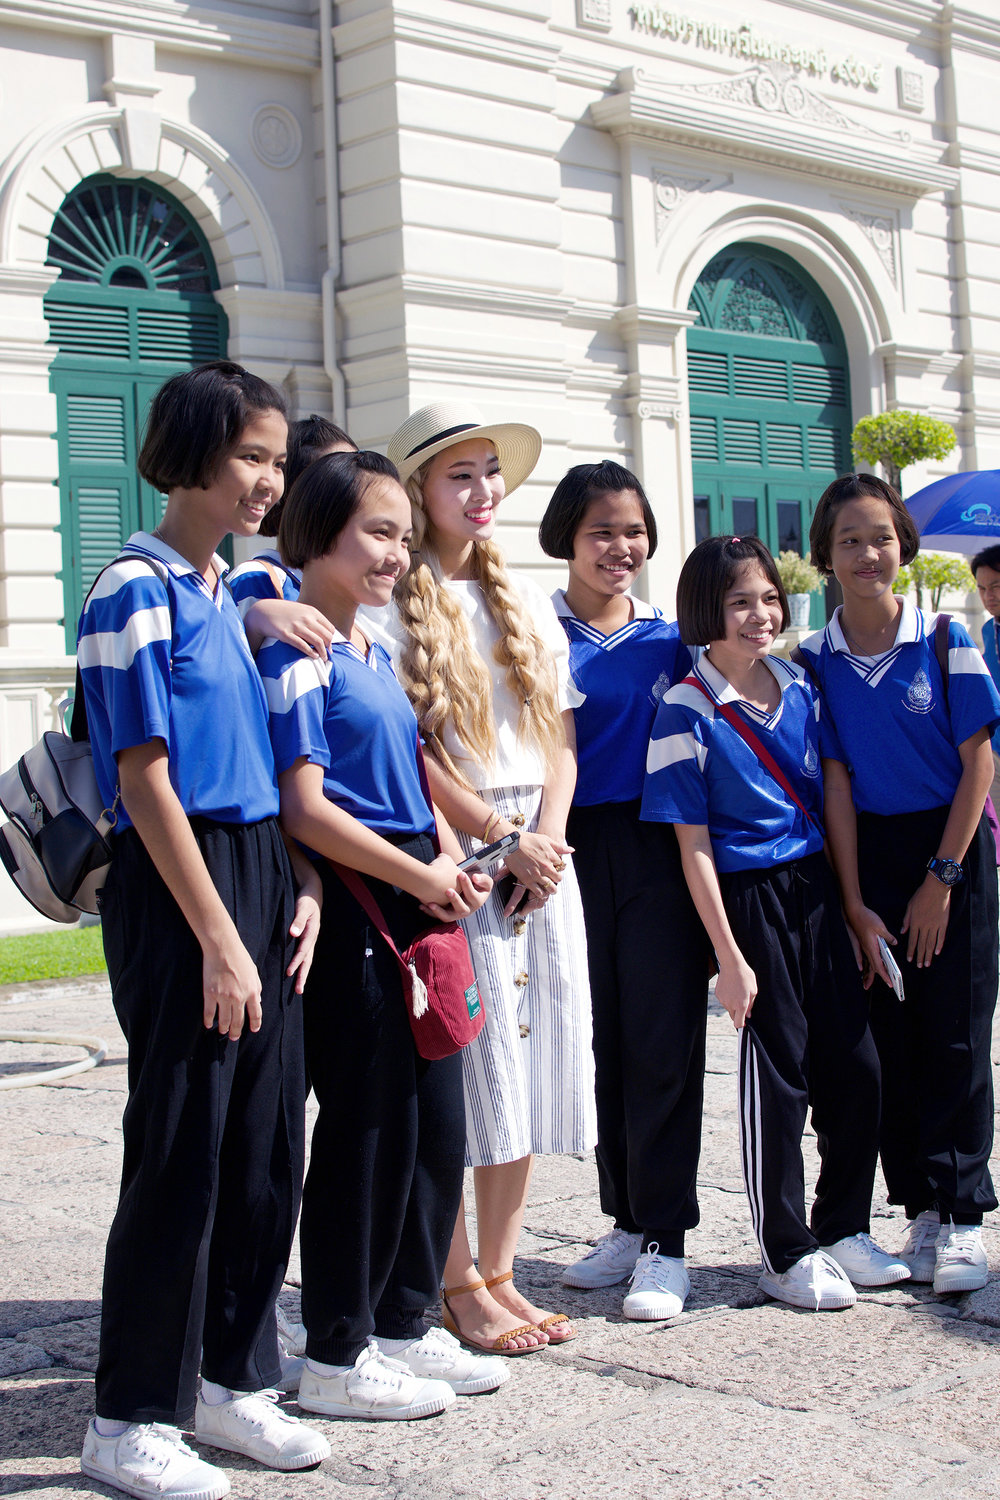 These Thai students were on a school field trip to Wat Phra Kaew and stopped me several times asking if they could take photos with me. How cute are their innocent faces and matching school uniforms?! I was flattered they wanted to take pictures with me, and also very embarassed and shy, lol! Jack snapped a photo of the crew taking a group photo with me.